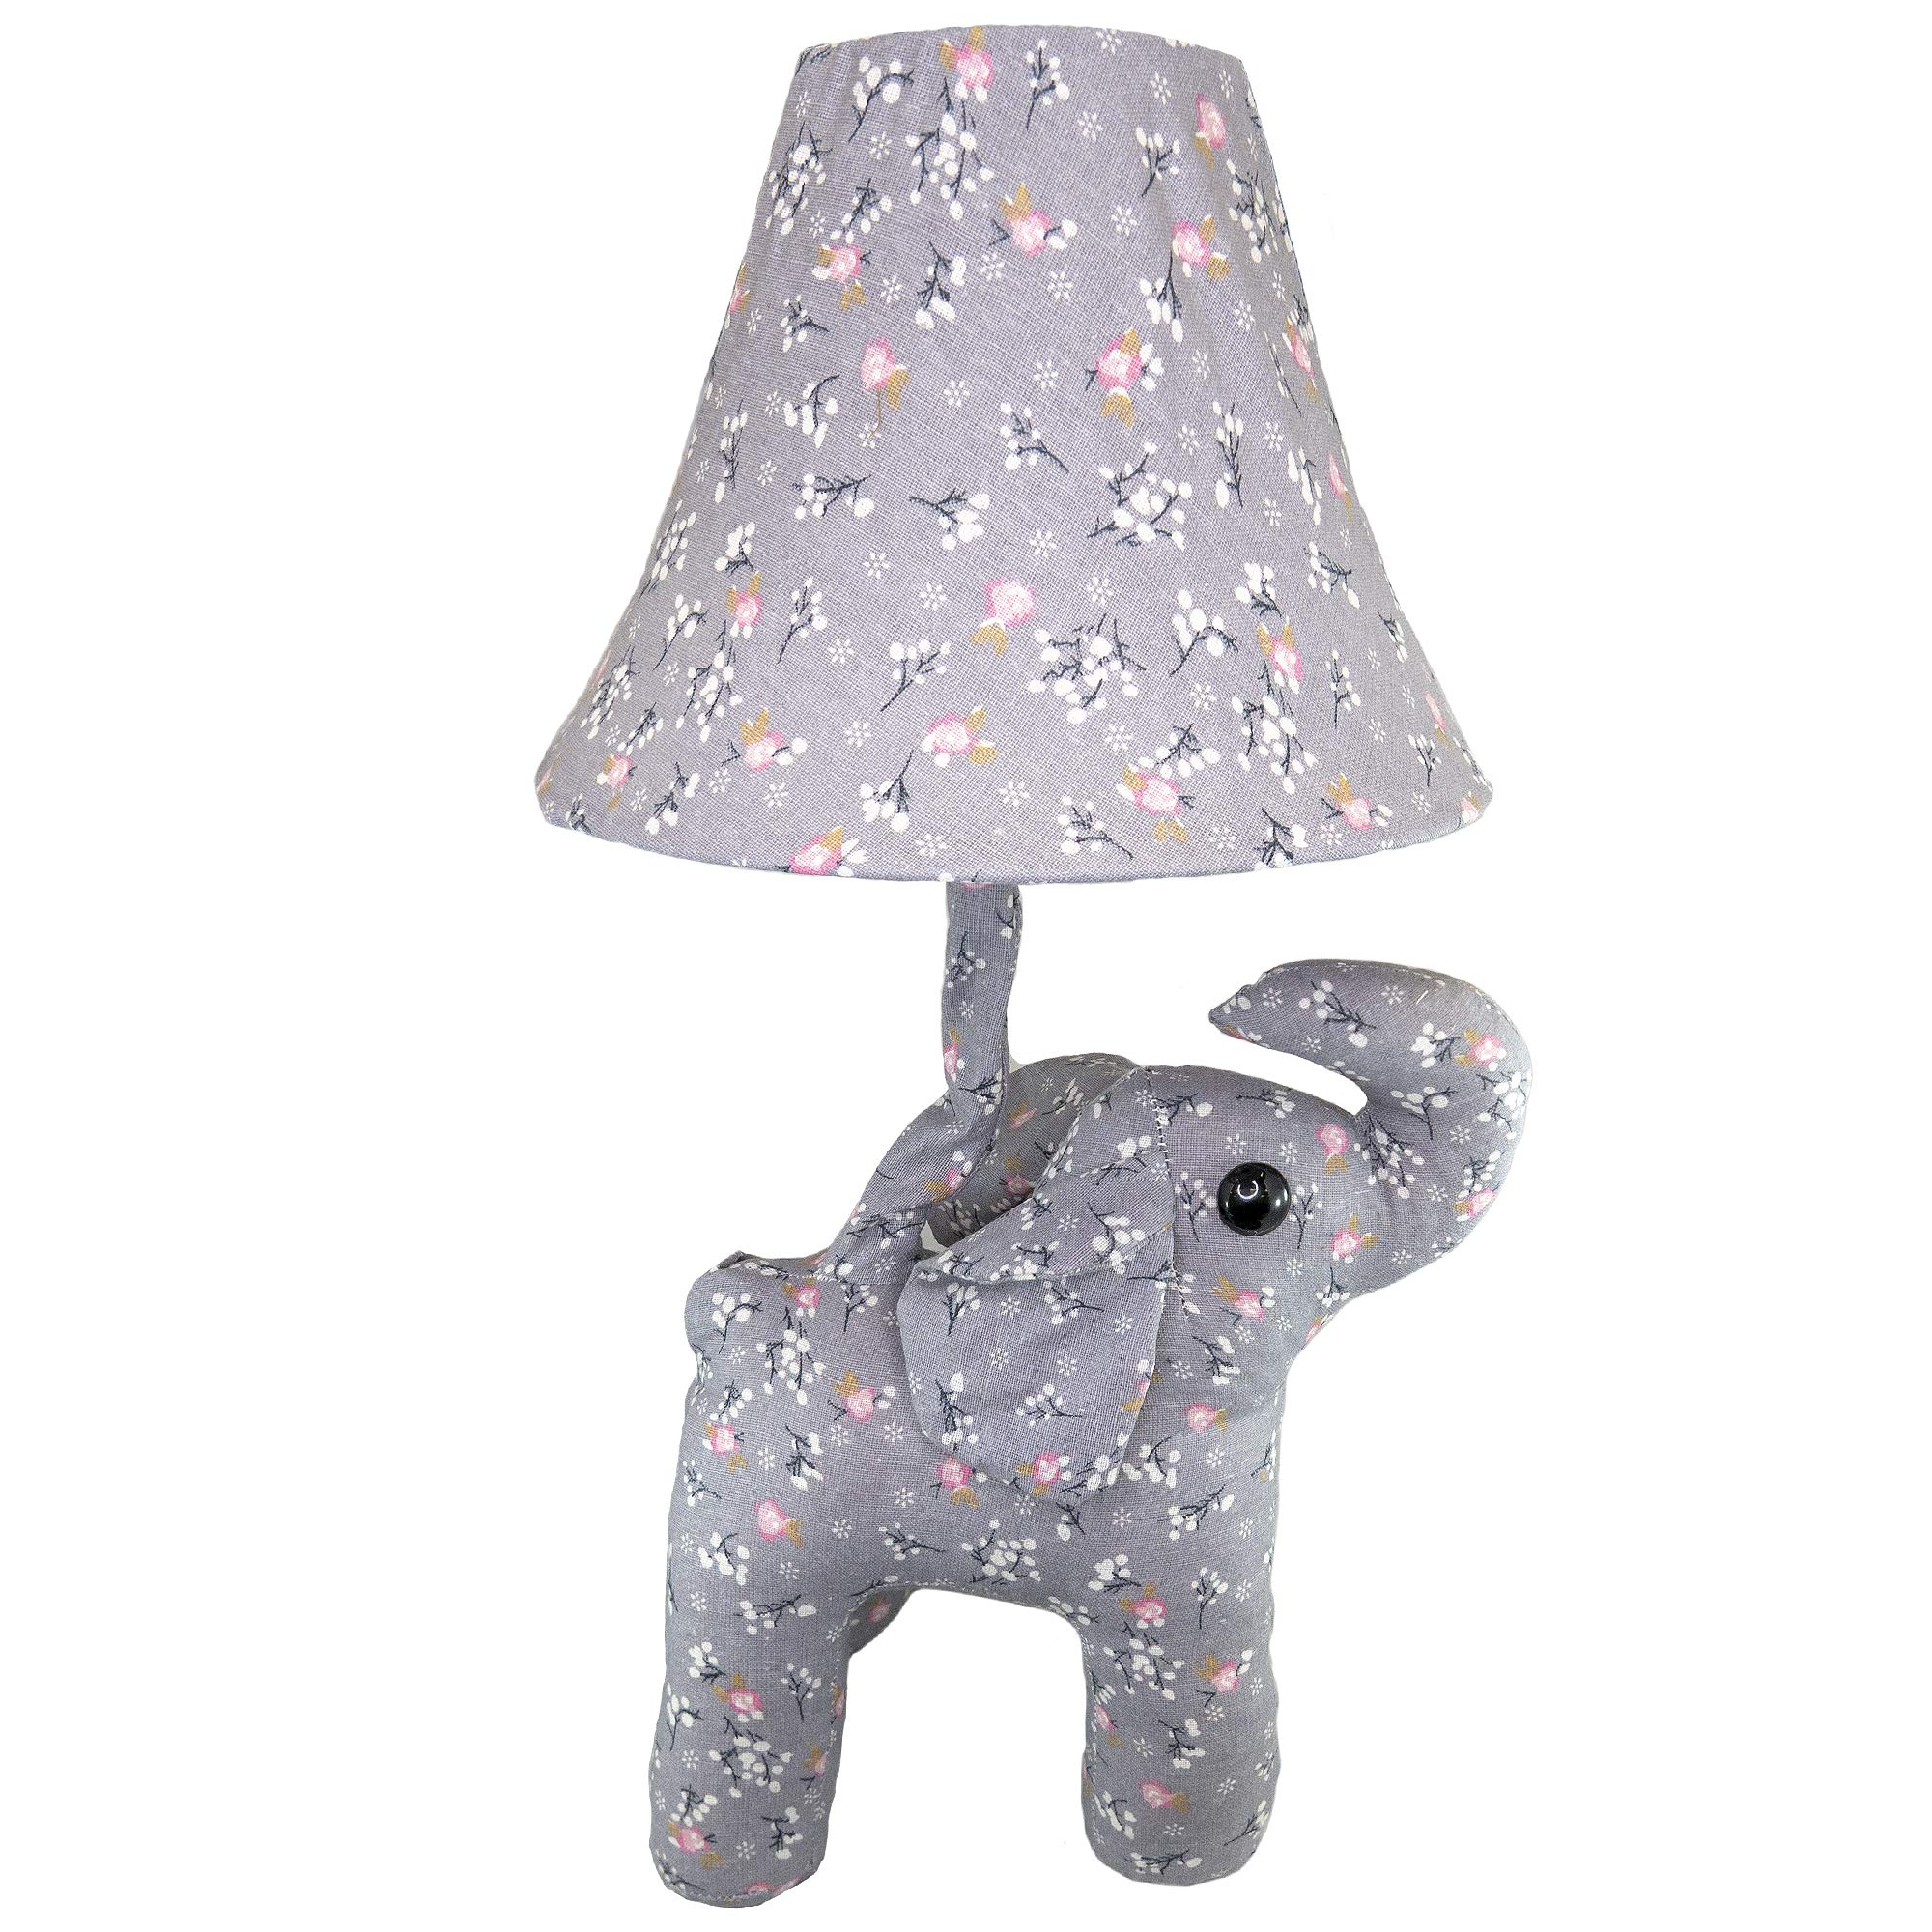 Fifth + Nest Kids Nursery Lamp - Plush Animal Table Top Lamps for Bedrooms - Cute Bedroom Decor for Baby, Toddler and Children's Room by Fifth + Nest